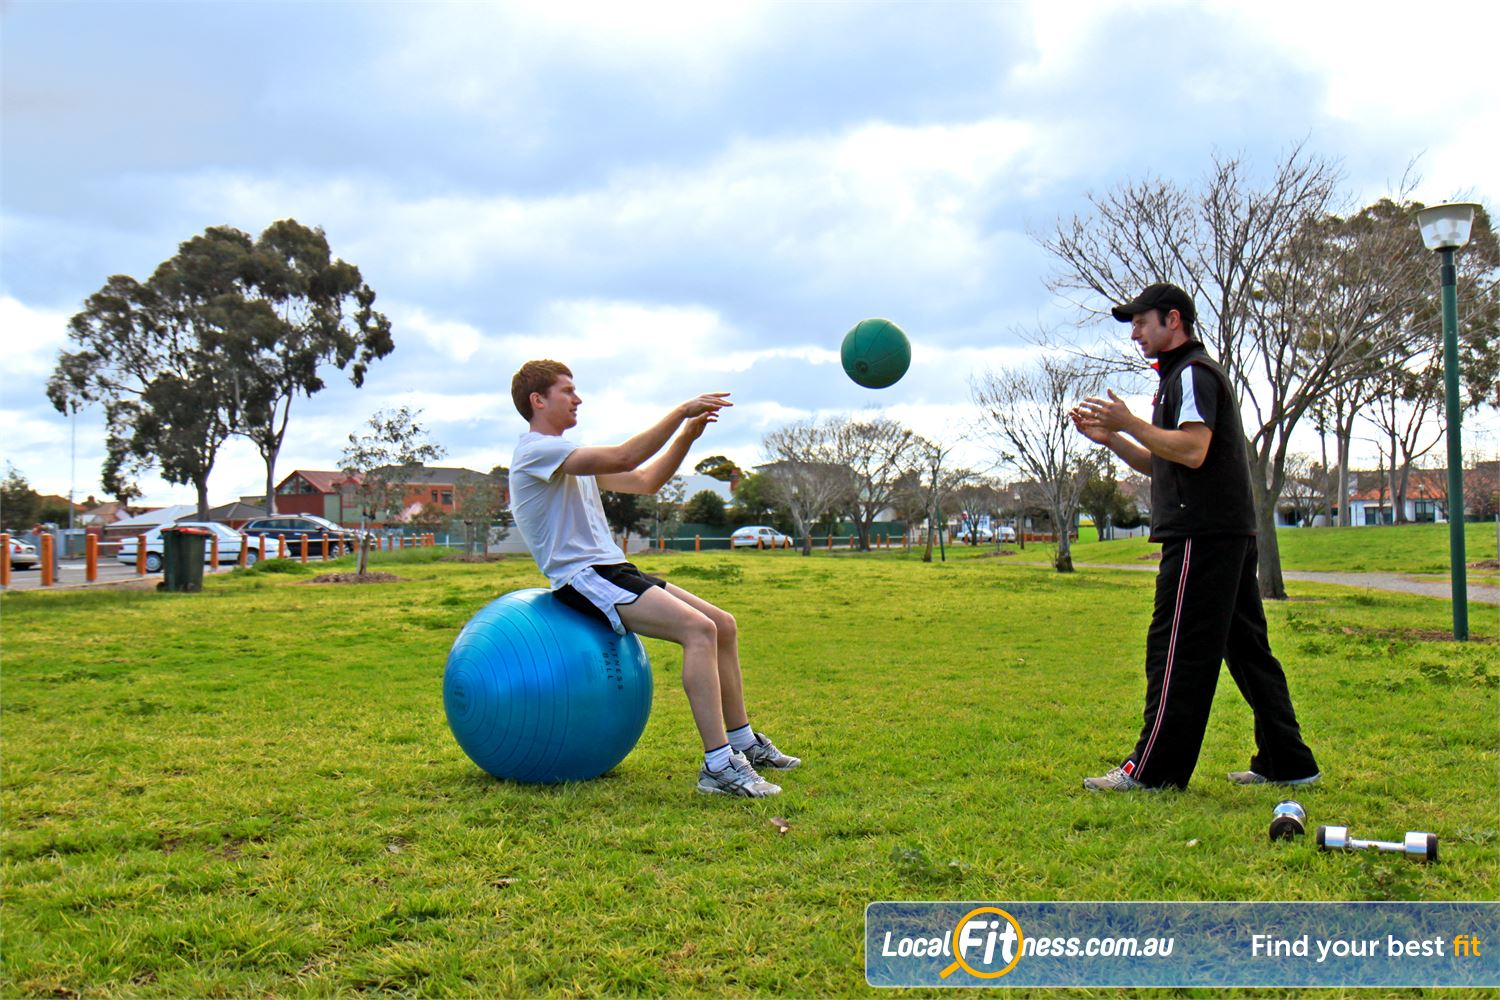 Ascot Vale Leisure Centre Ascot Vale Get some fresh air training at Victory park in Ascot Vale.